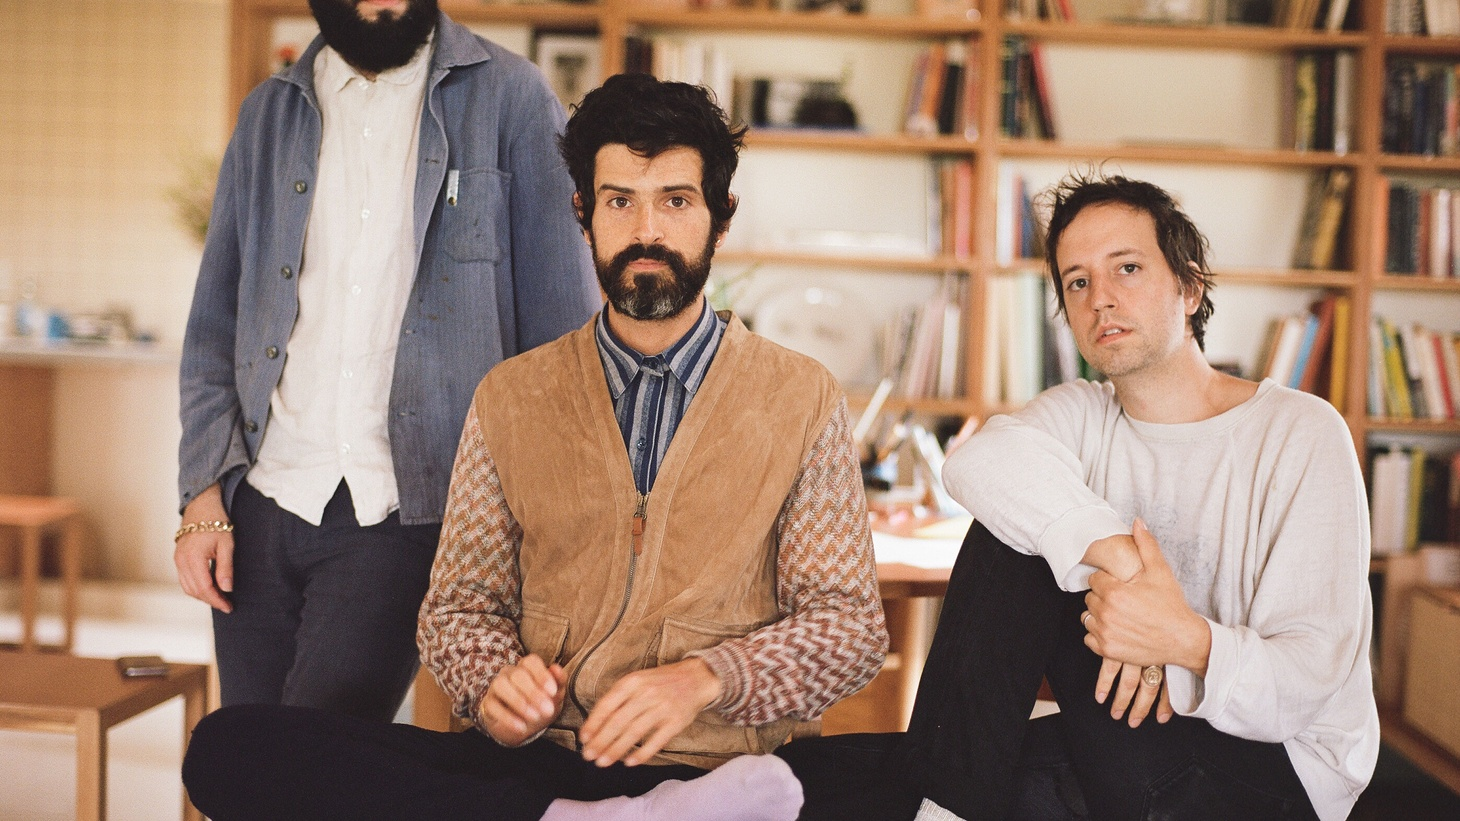 The ninth album by freak folk artist Devendra Banhart was written, produced, arranged and recorded in his adopted home base of Los Angeles.